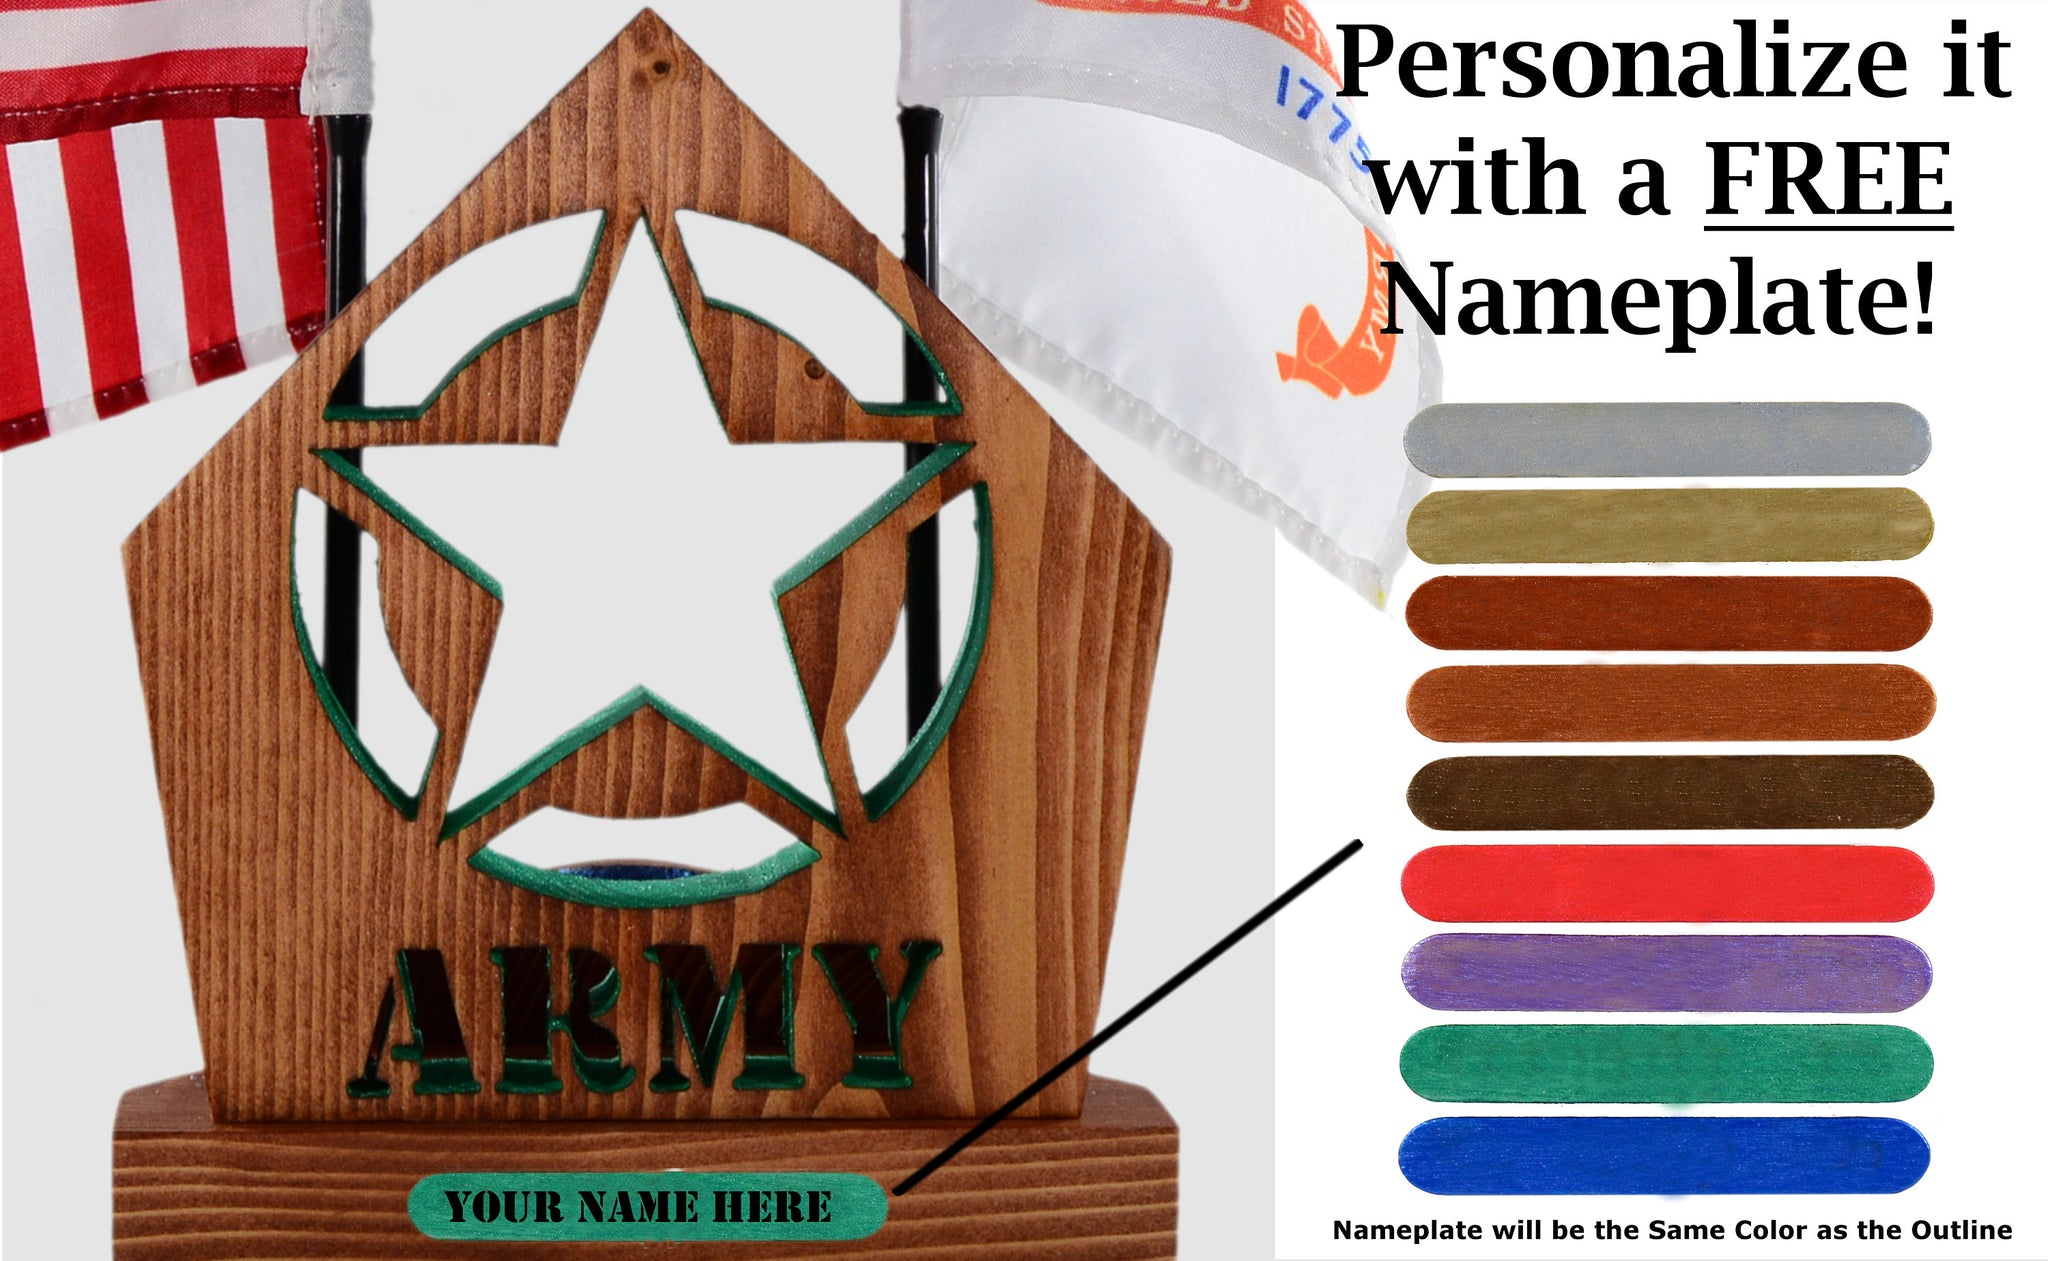 ARMY Star Insignia Desk Set • Personalized Gift for Veteran Soldier